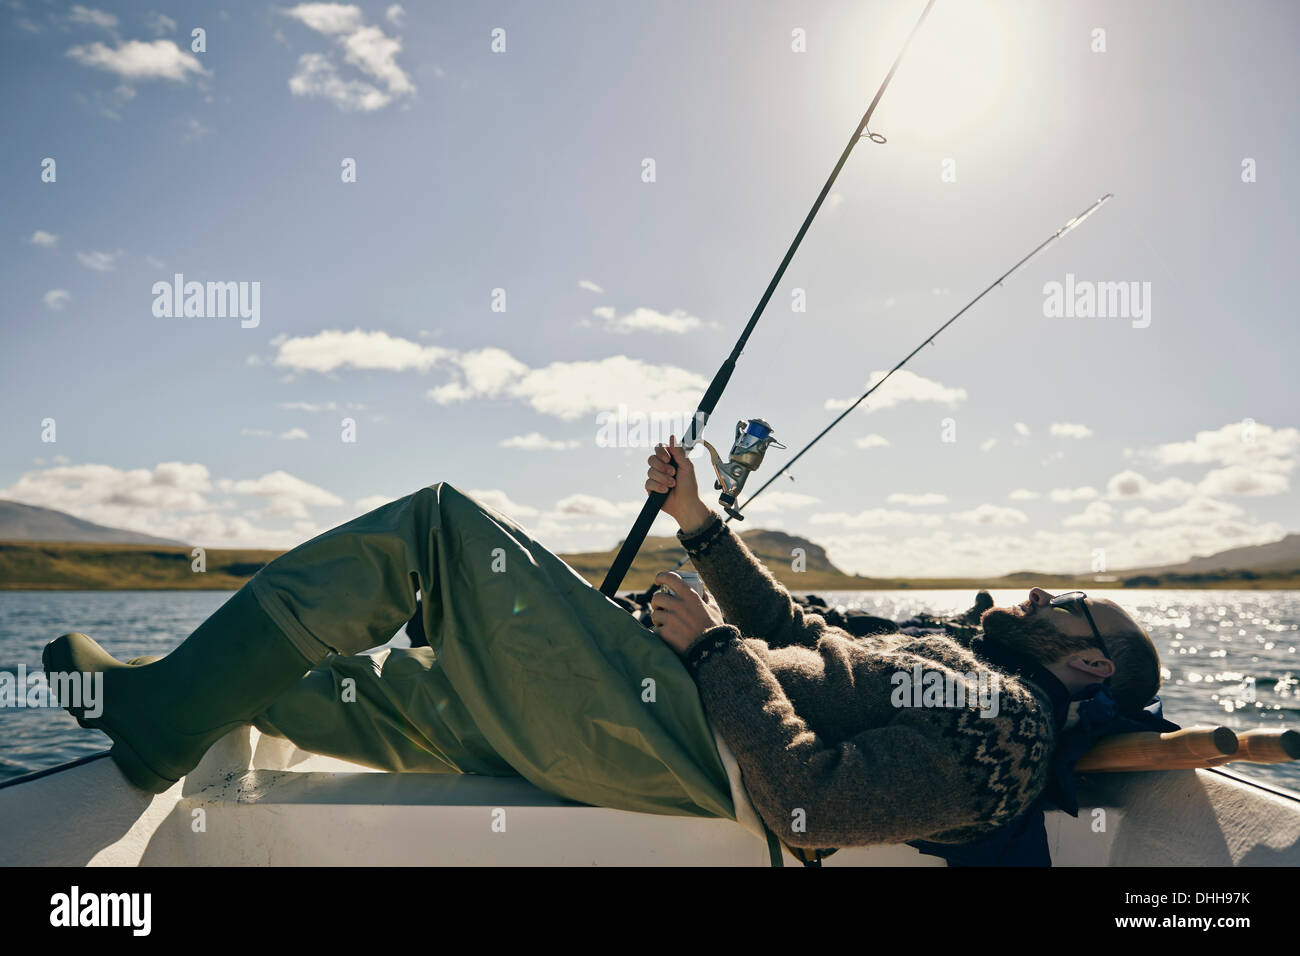 Men on fishing trip Stock Photo